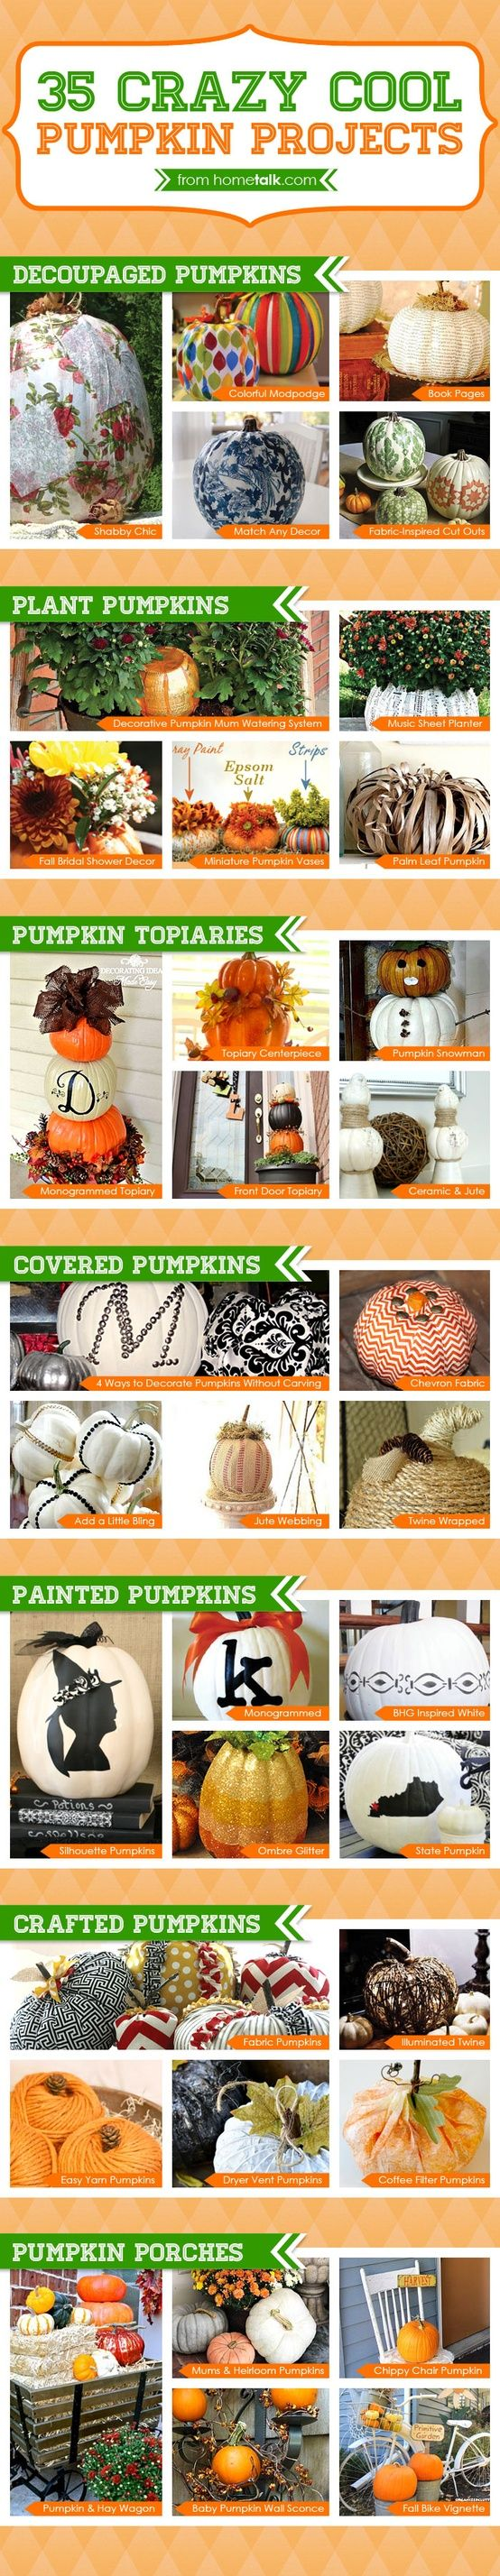 30 Crazy Cool Pumpkin DIY Projects for Halloween ... via Home Talk   |   #DIY   #Crafts   #Project   #Halloween   #Pumpkin